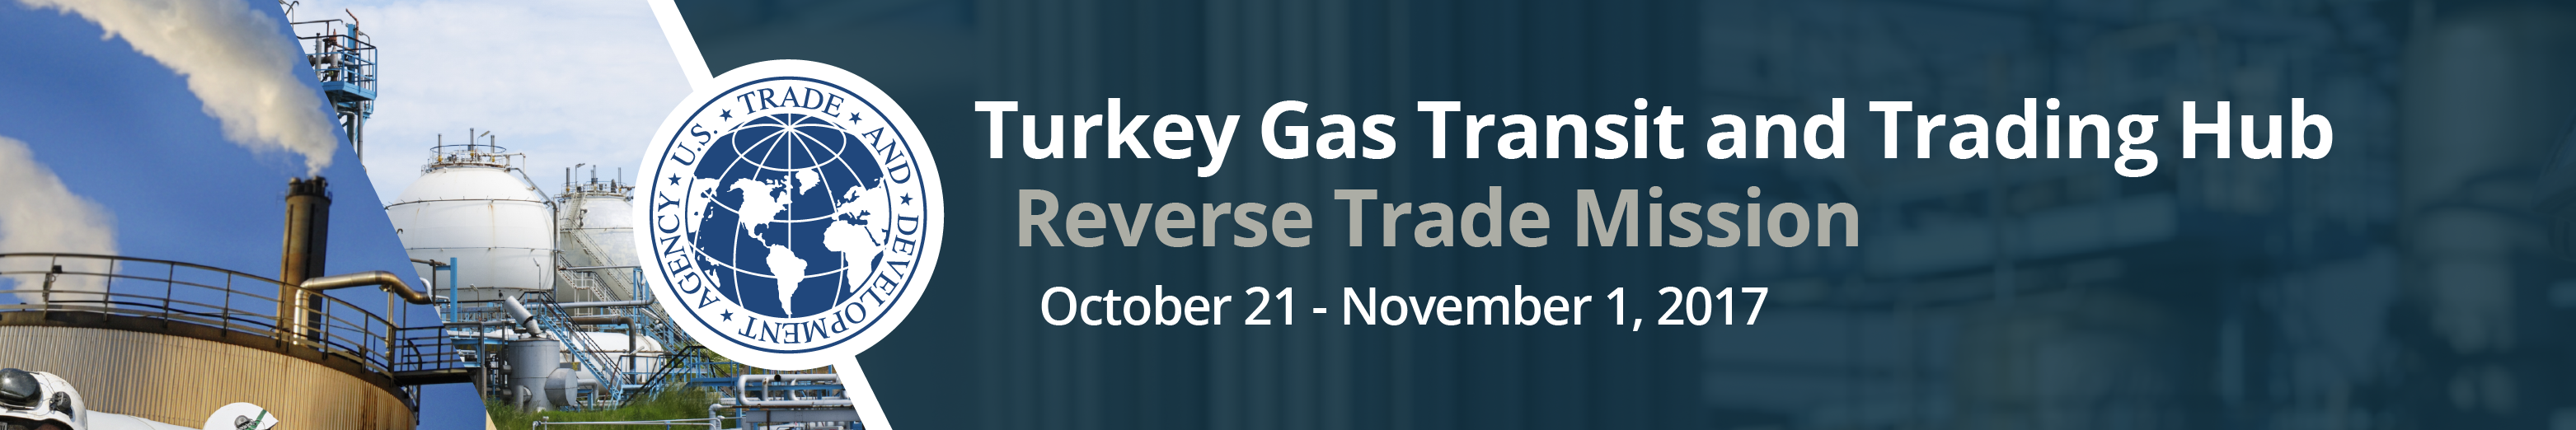 Turkey Gas Transit and Trading Hub Reverse Trade Mission - Business Briefing